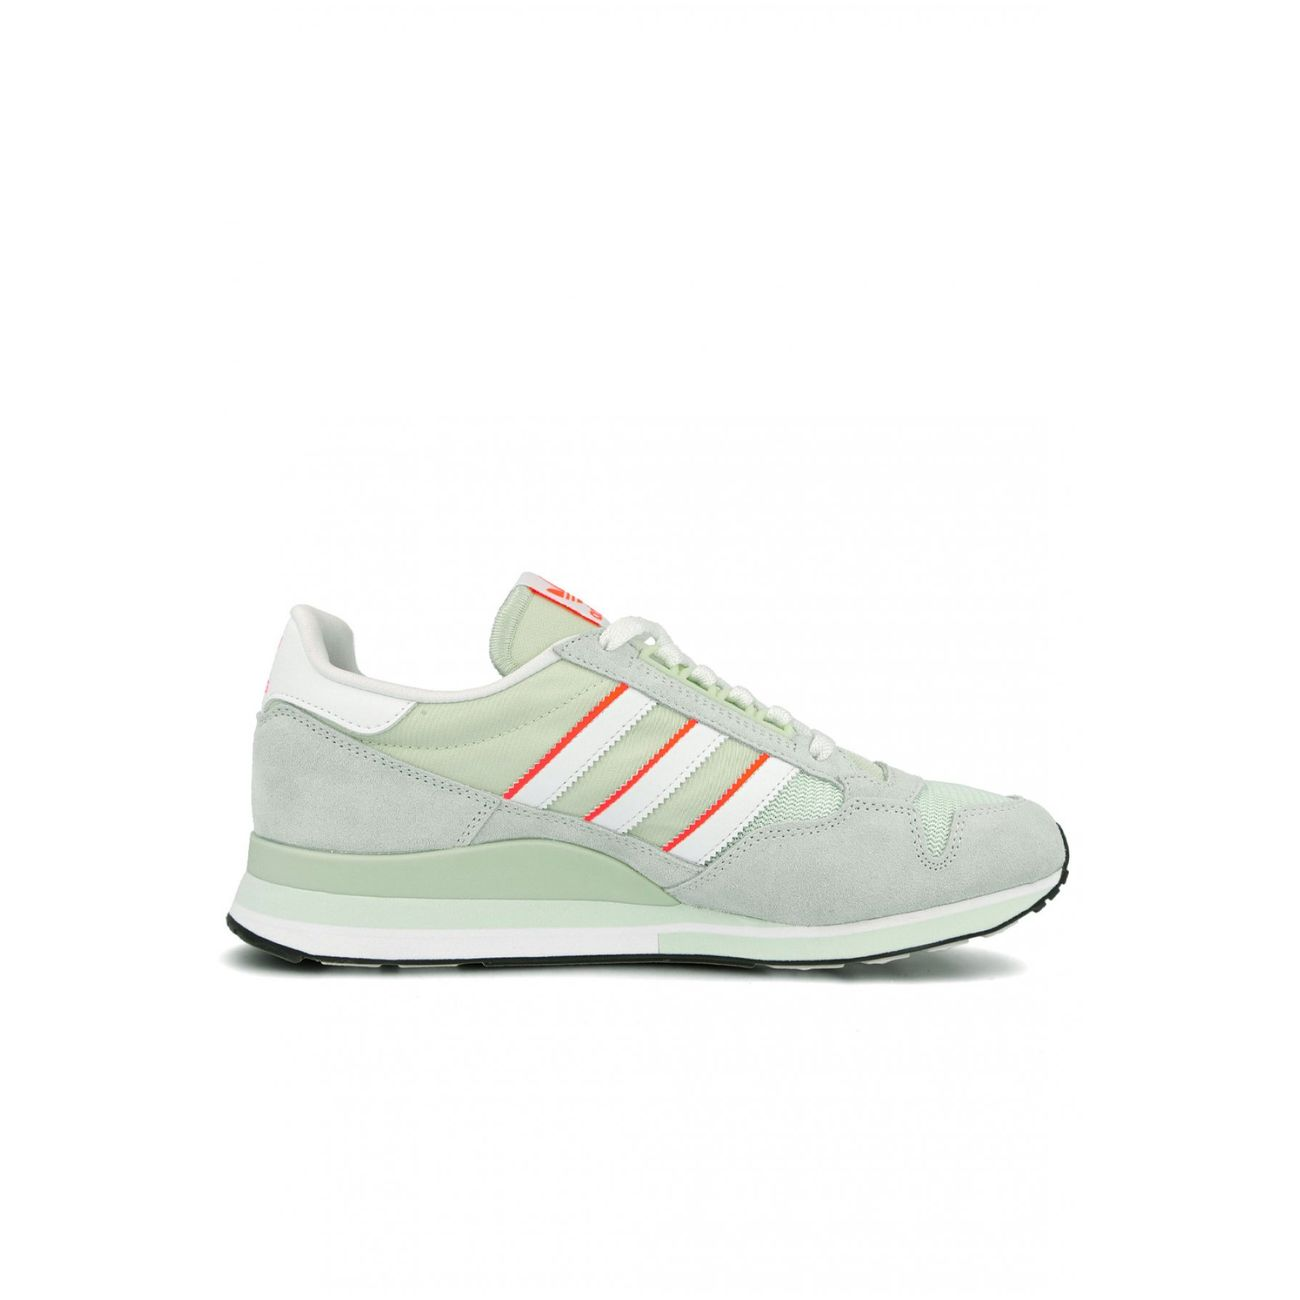 homme ADIDAS Sneakers bimatière ZX 500 - Adidas - Homme